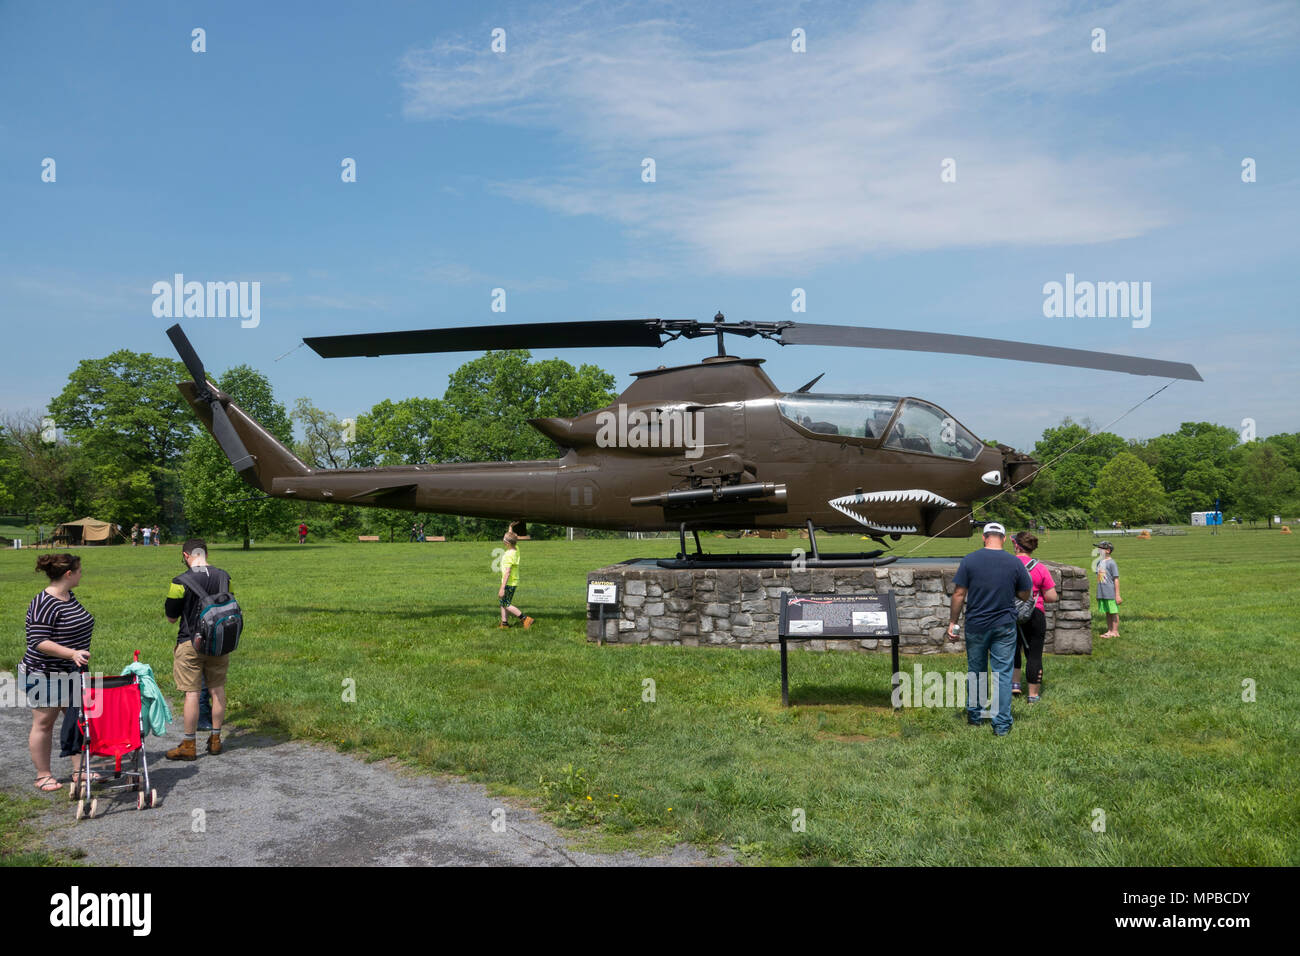 Bell AH-1 Cobra Helicopter at the The U.S. Army Heritage and Education Center - Stock Image